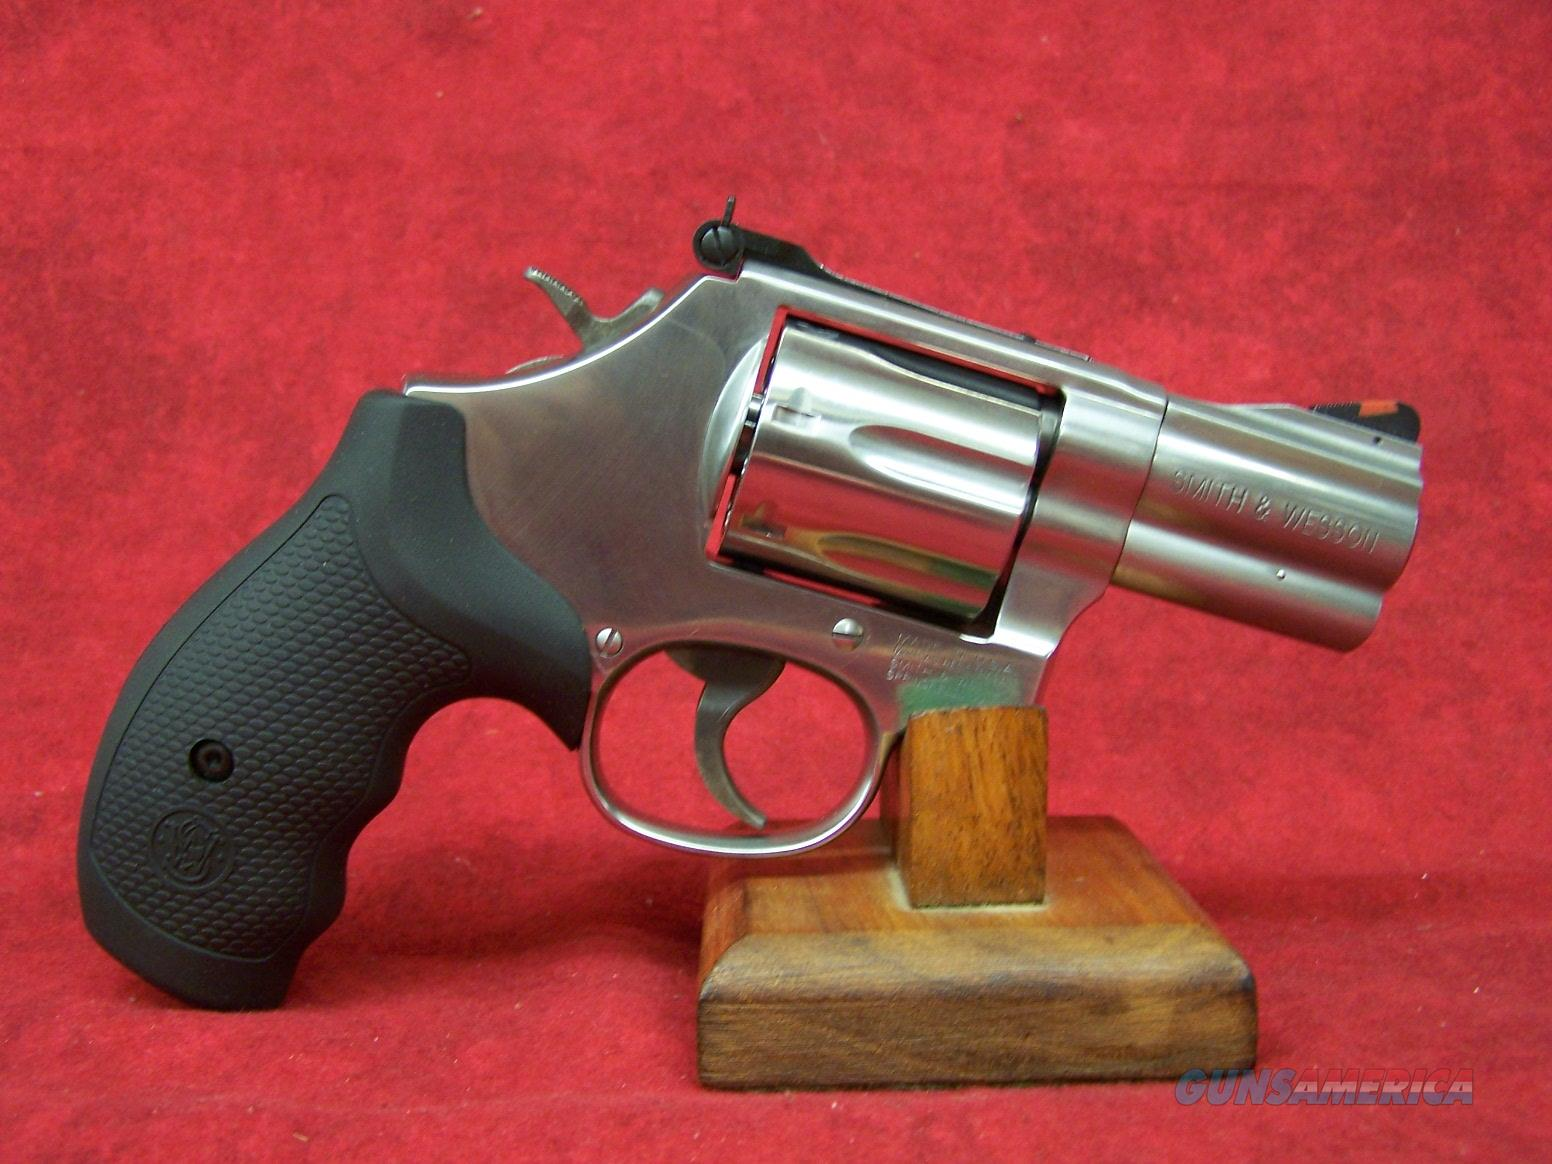 """SMITH & WESSON Model 686 Plus .357 Magnum/.38 Smith & Wesson Special +P 2.5"""" (164192)  Guns > Pistols > Smith & Wesson Revolvers > Full Frame Revolver"""